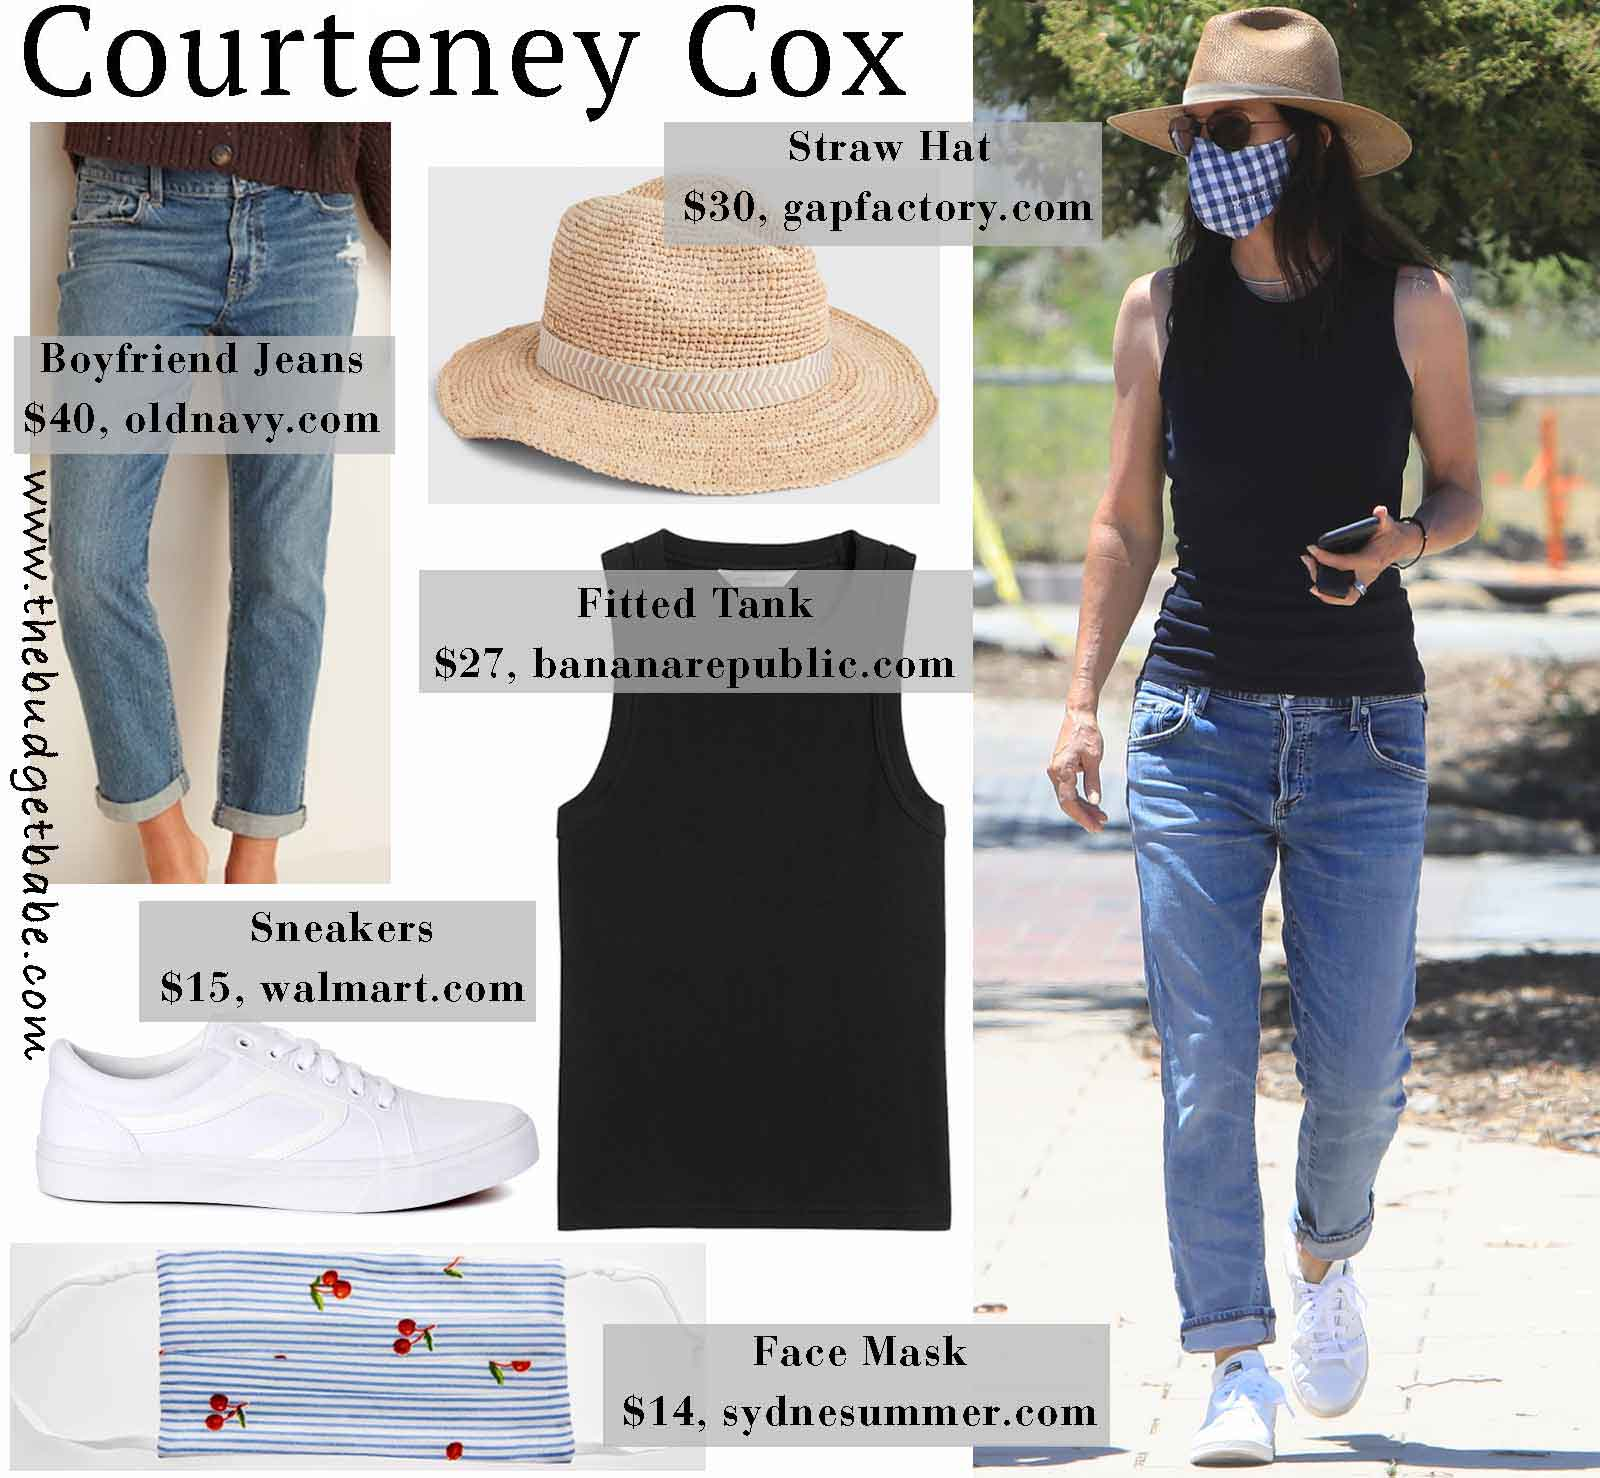 Courteney Cox hits the farmer's market in a straw hat and gingham face mask.